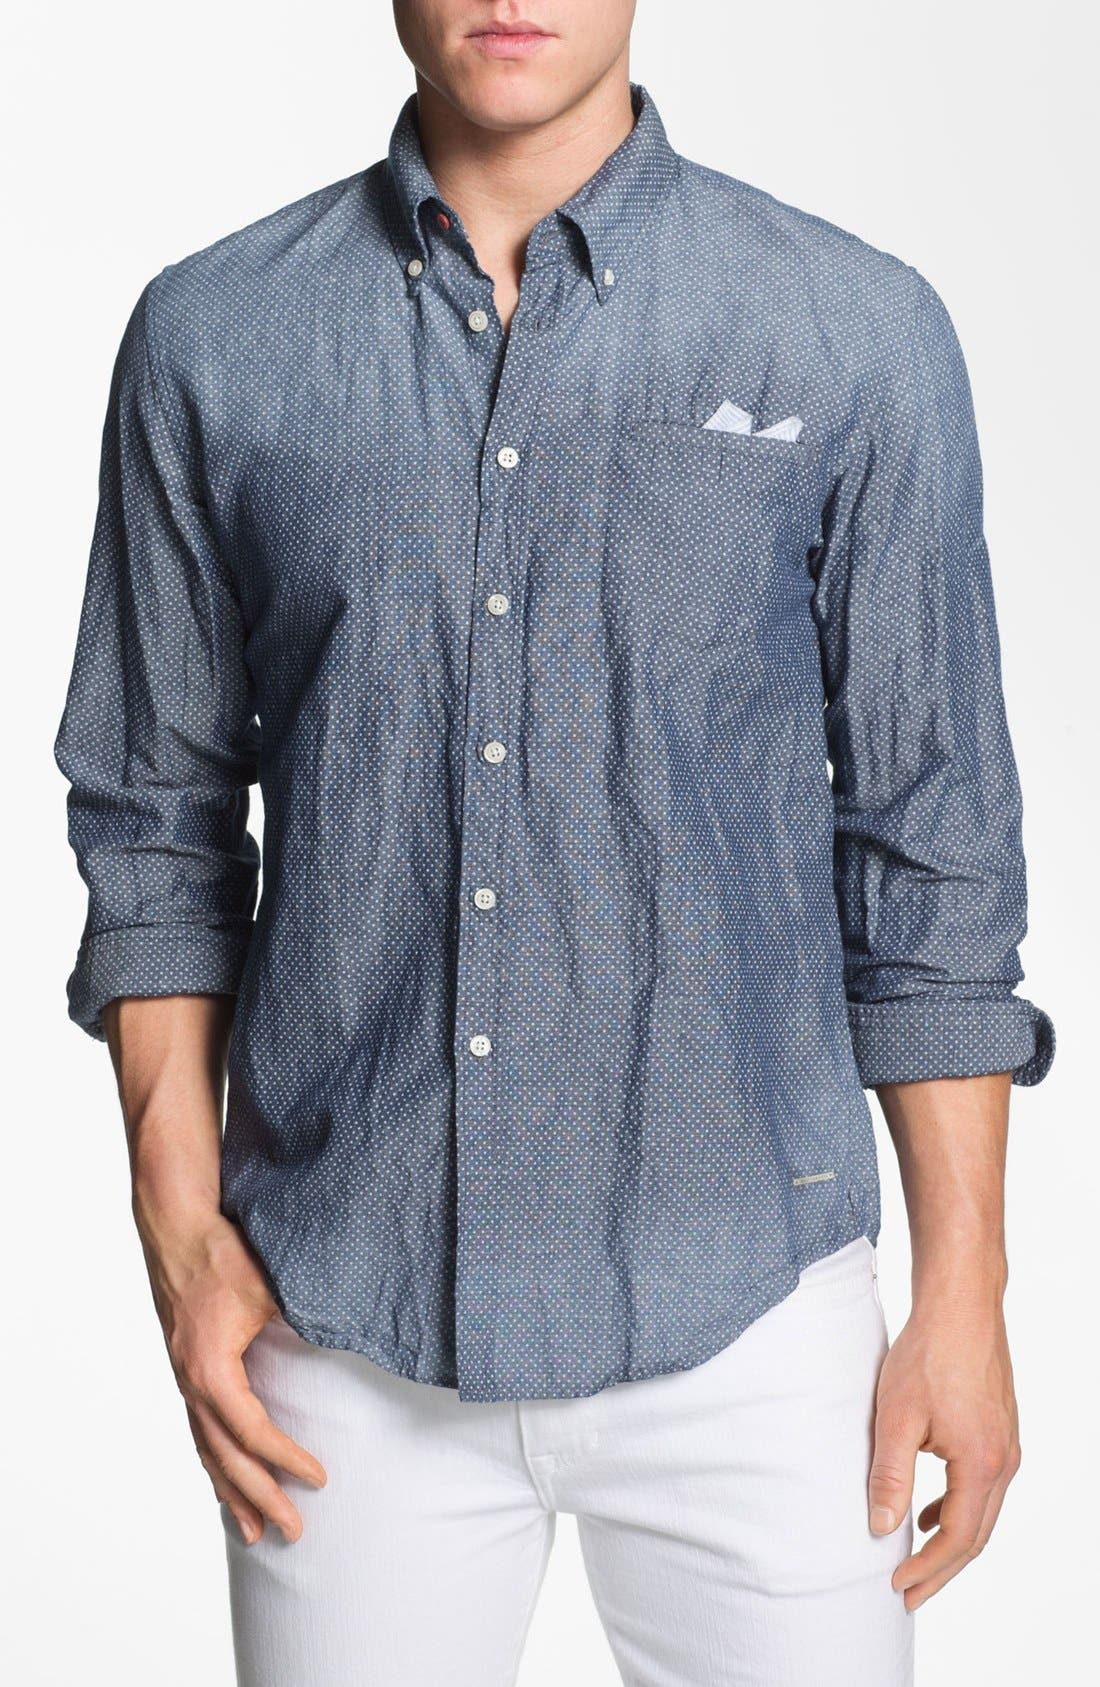 Alternate Image 1 Selected - Scotch & Soda Trim Fit Chambray Shirt